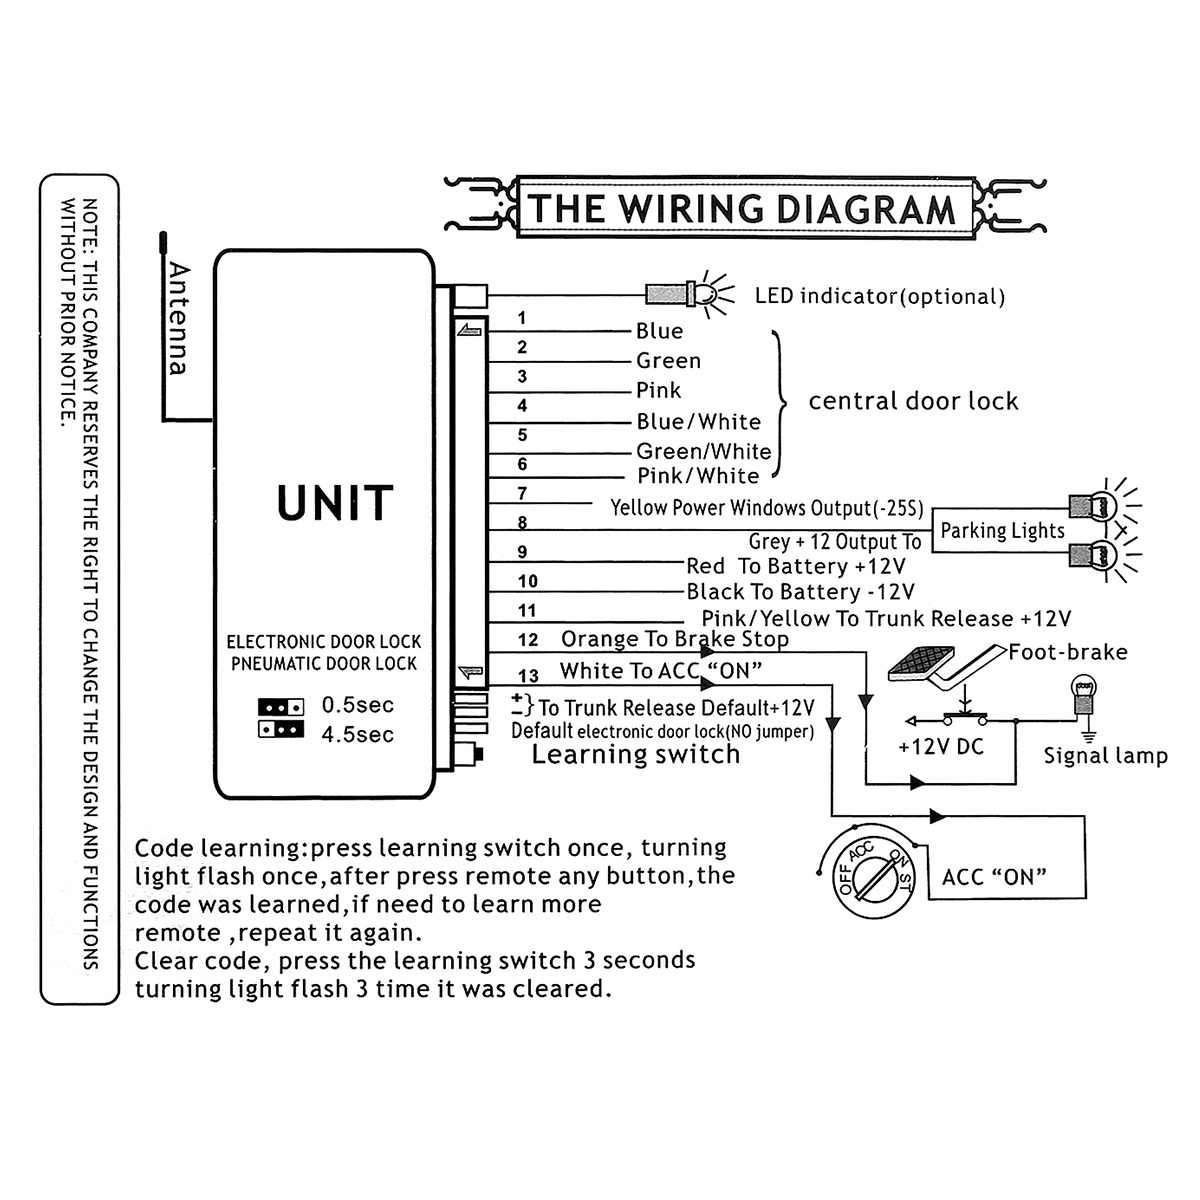 Universal Keyless Entry Wiring Diagram For Heat Pump Vw Polo 1998 Central Locking Library